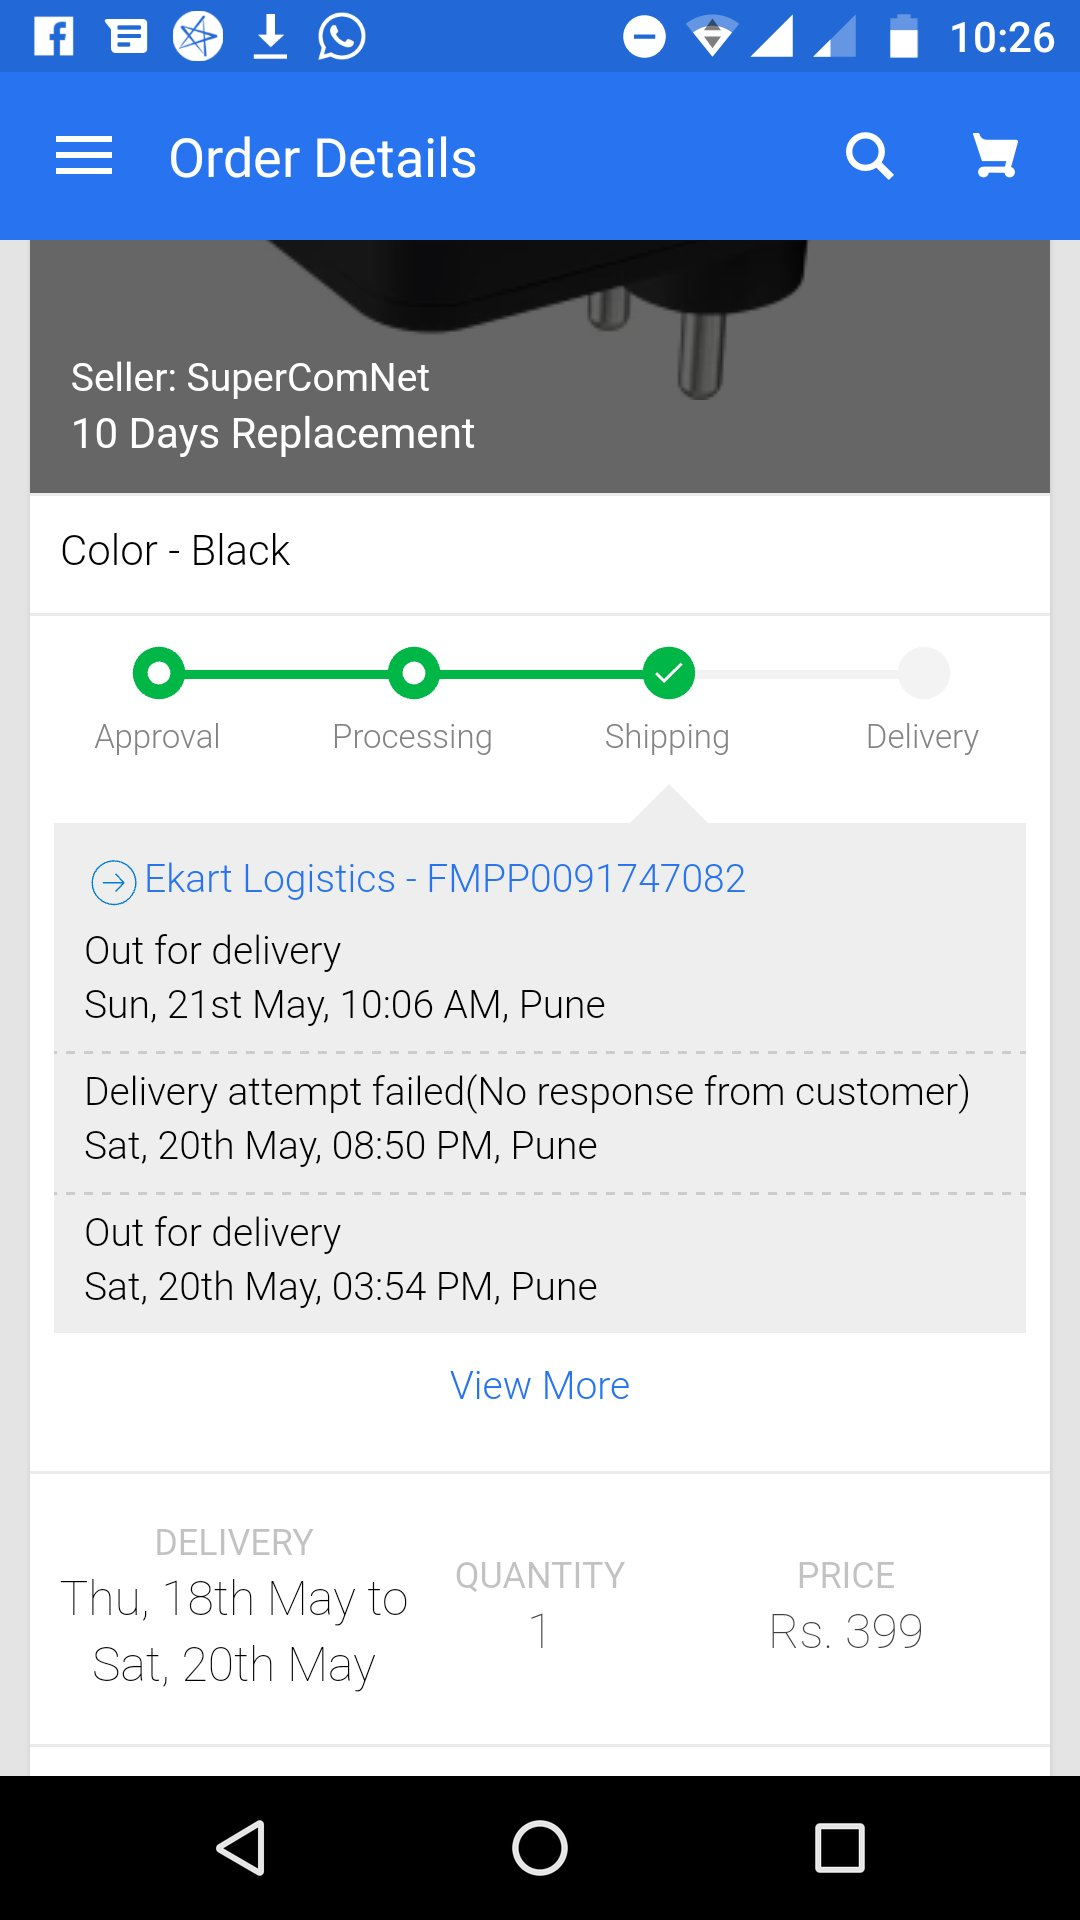 """ZakM on Twitter: """"@binnybansal returned to Flipkart and a horrible  experience. Delivery missed while I was home and now ekart says can't  expedite. Amazing CS!… https://t.co/gKFy0bkz6L"""""""